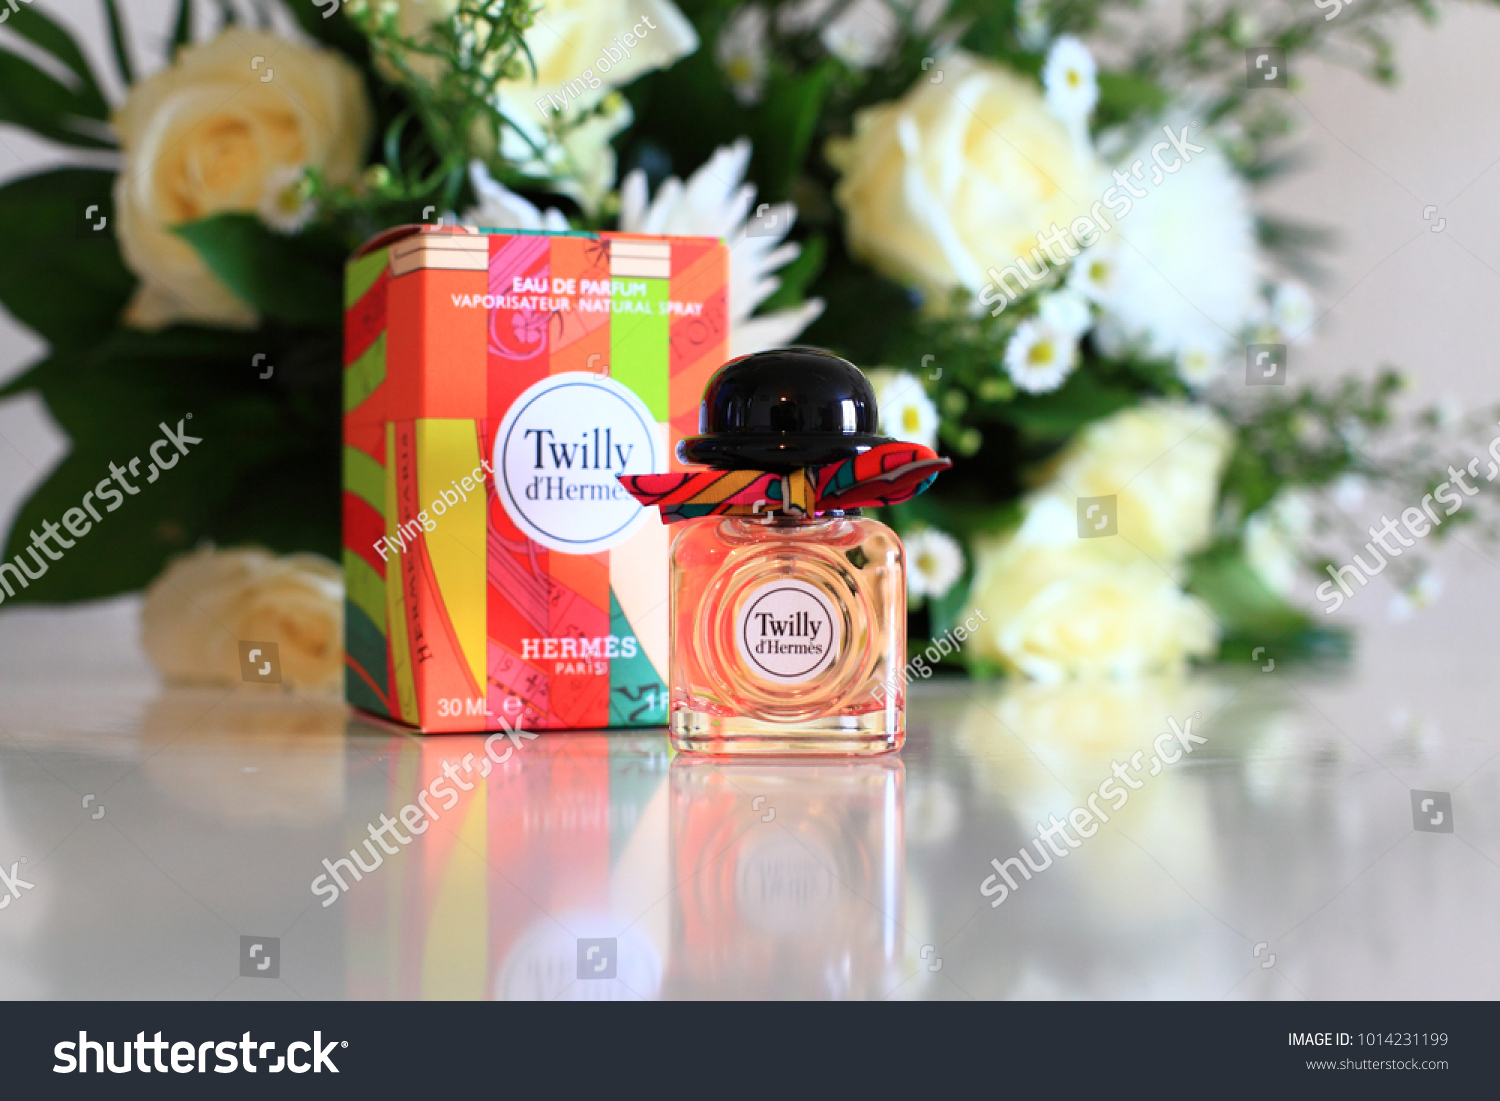 Paris france january 28 2018 new stock photo edit now 1014231199 paris france january 28 2018 new luxury hermes perfume fragrance twilly with izmirmasajfo